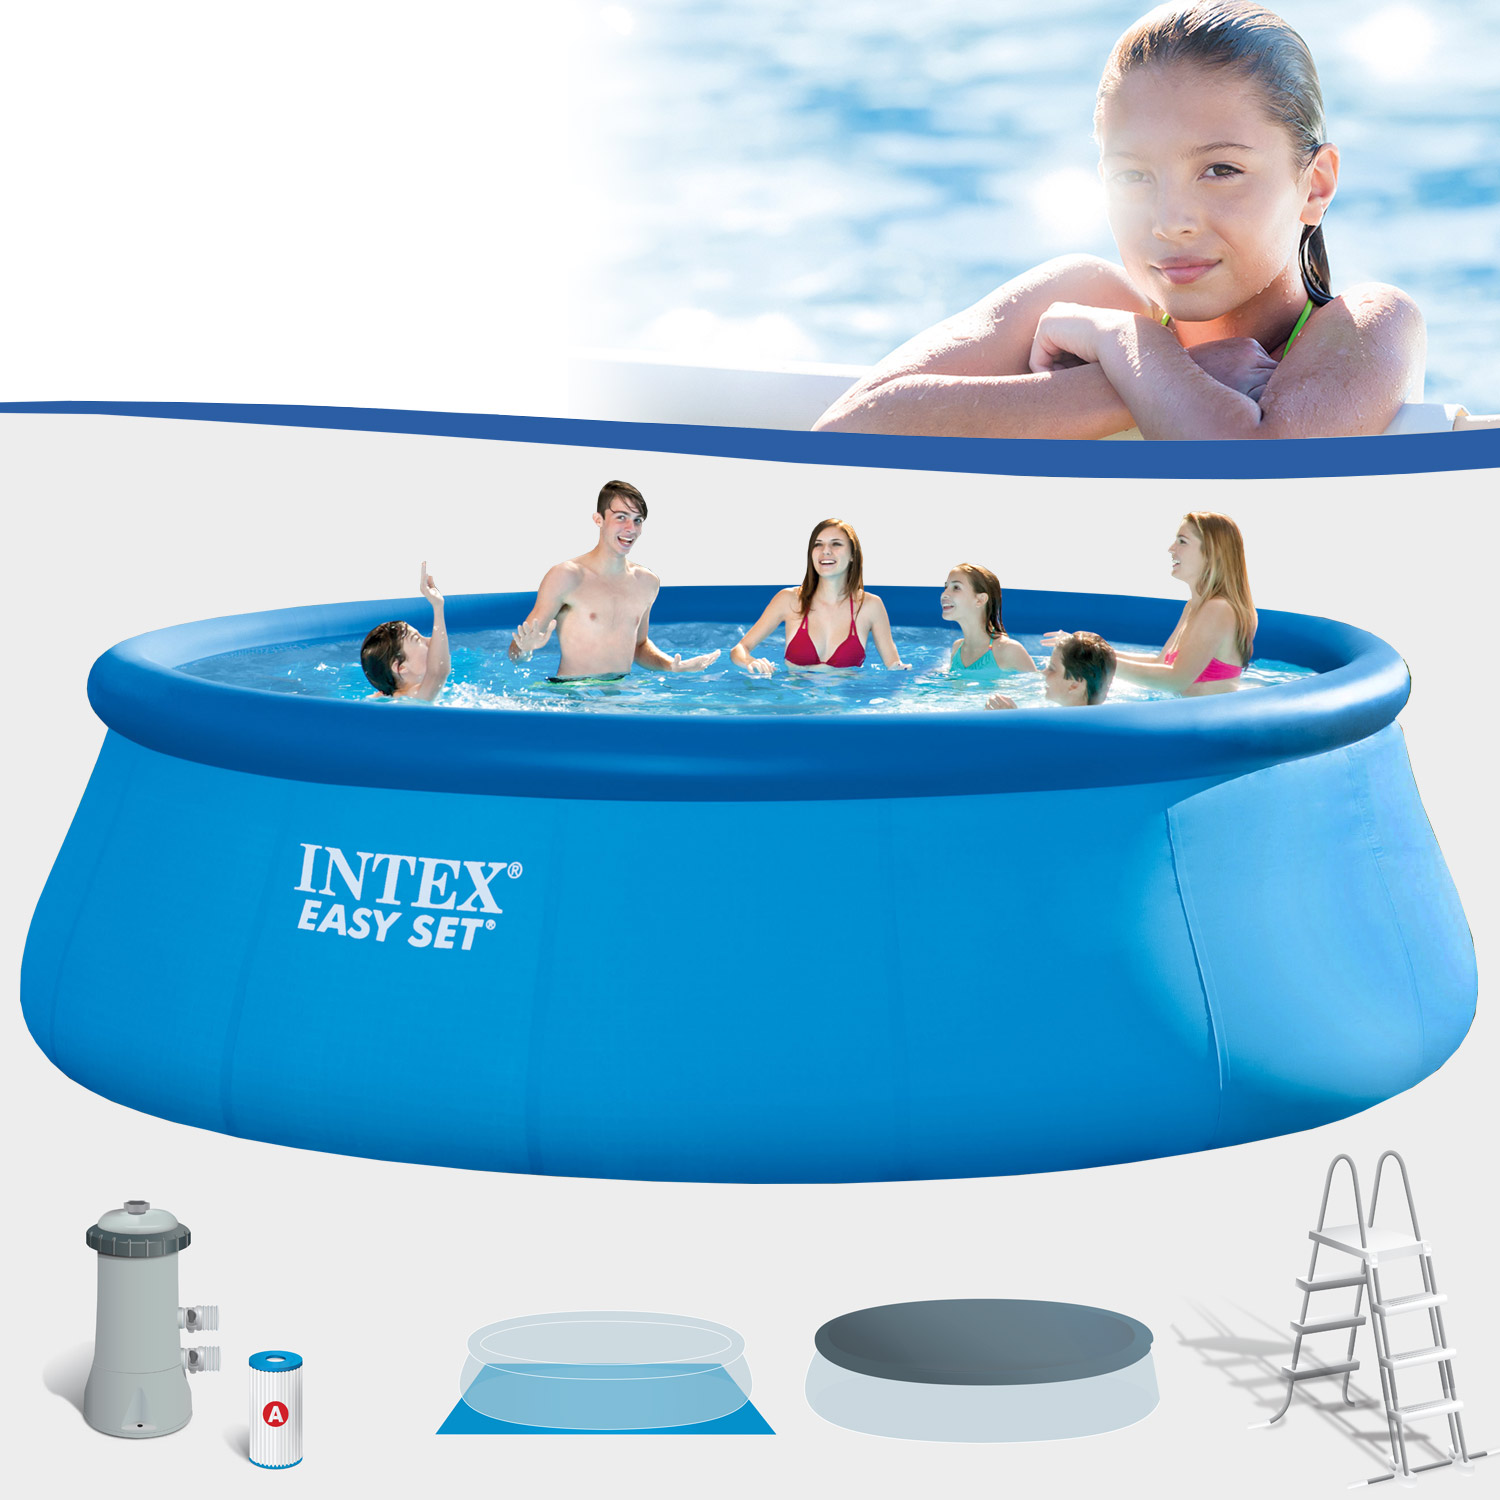 Intex swimming pool easy 457x122 cm mit pumpe leiter for Pool 457x122 mit sandfilteranlage